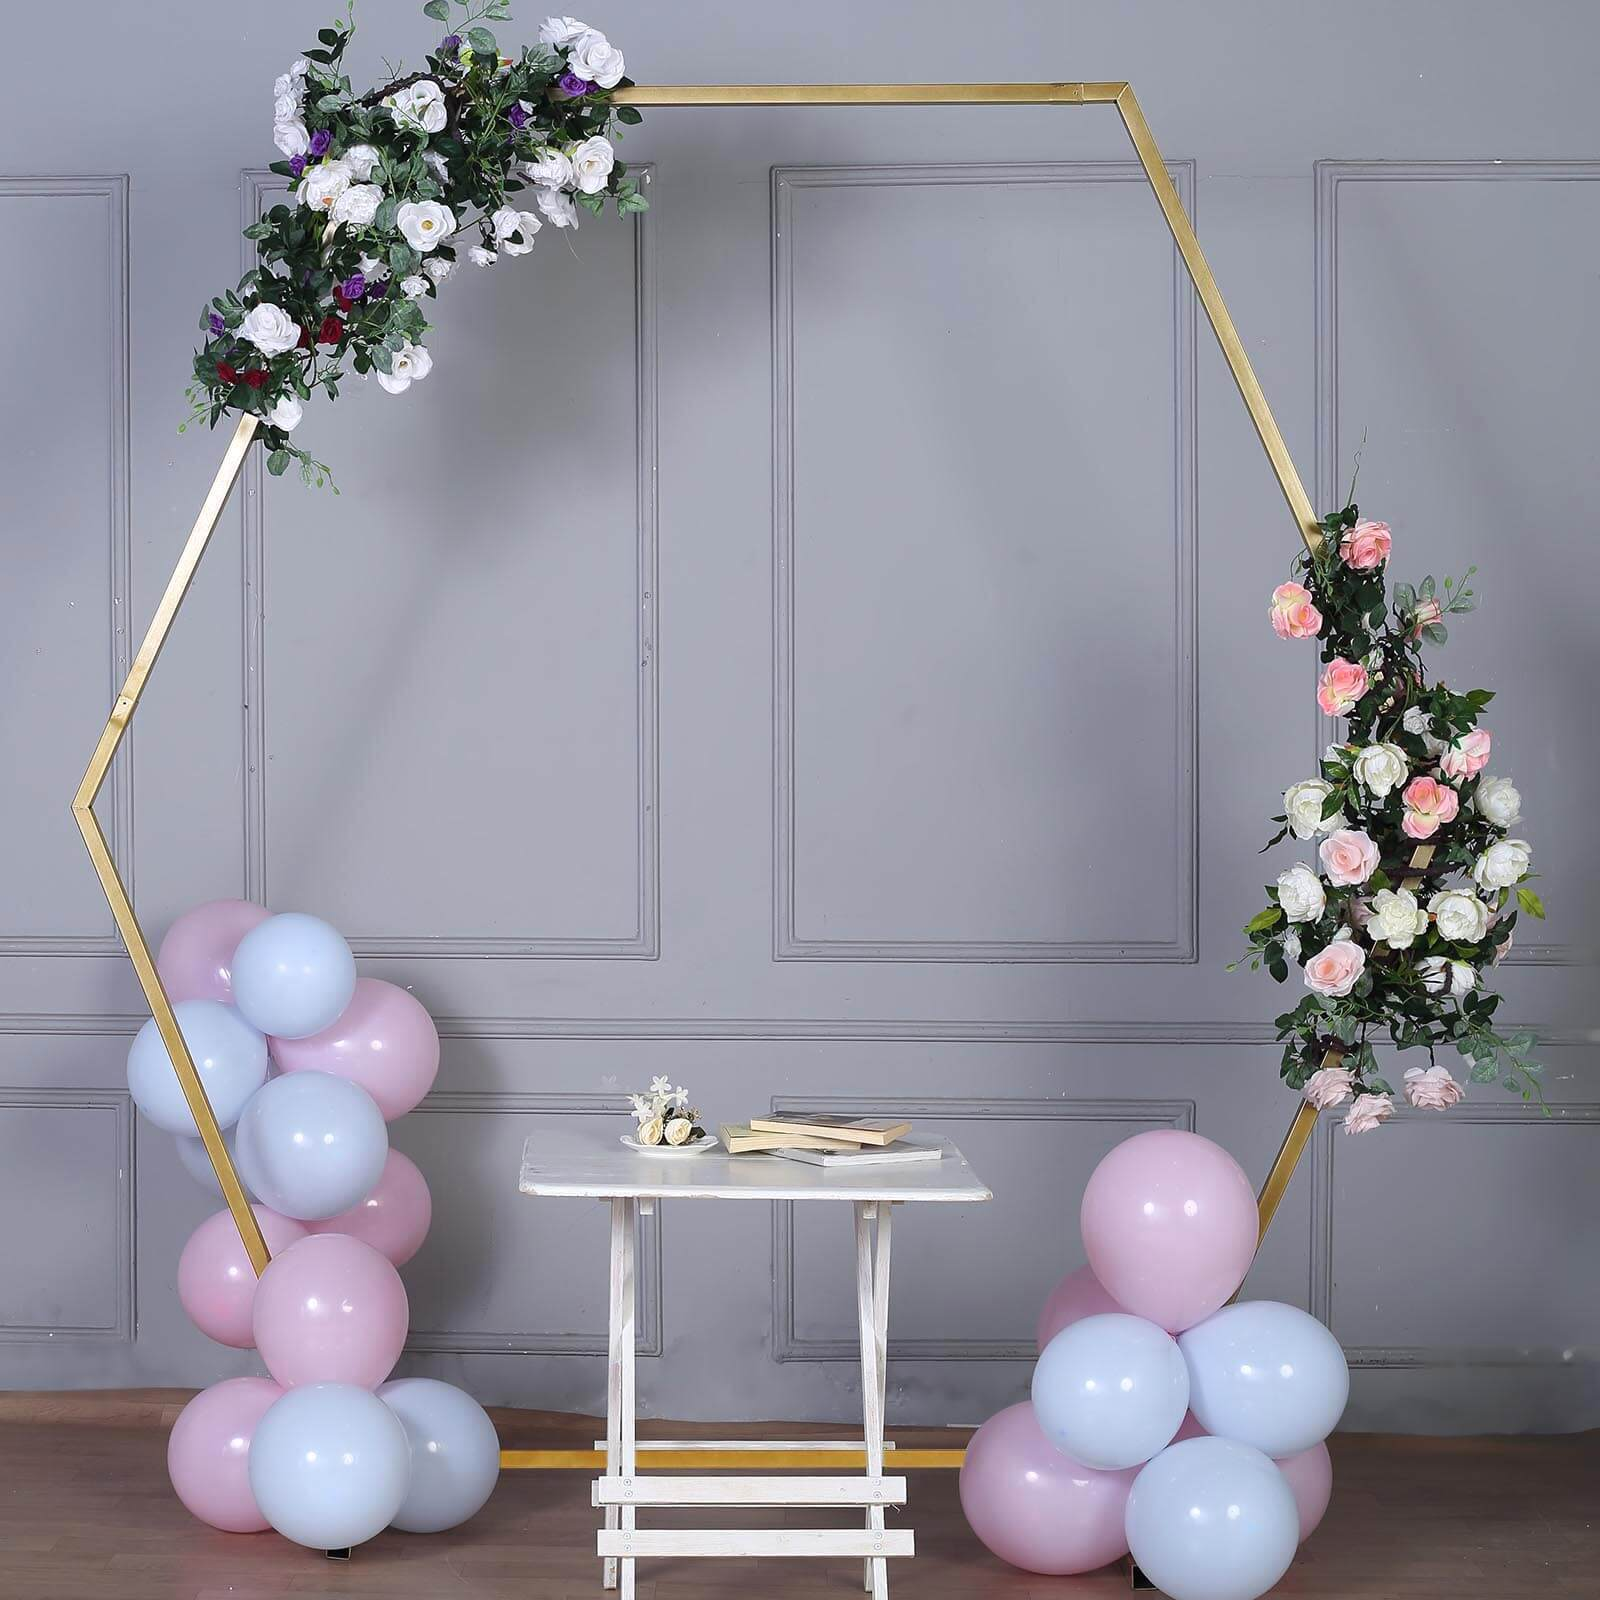 GladsBuy Arch Stairs Floor 8 x 8 Computer Printed Photography Backdrop Arches or Pillars Theme Custom Wedding Children Birthday Fashionshow Party Background LMG-705